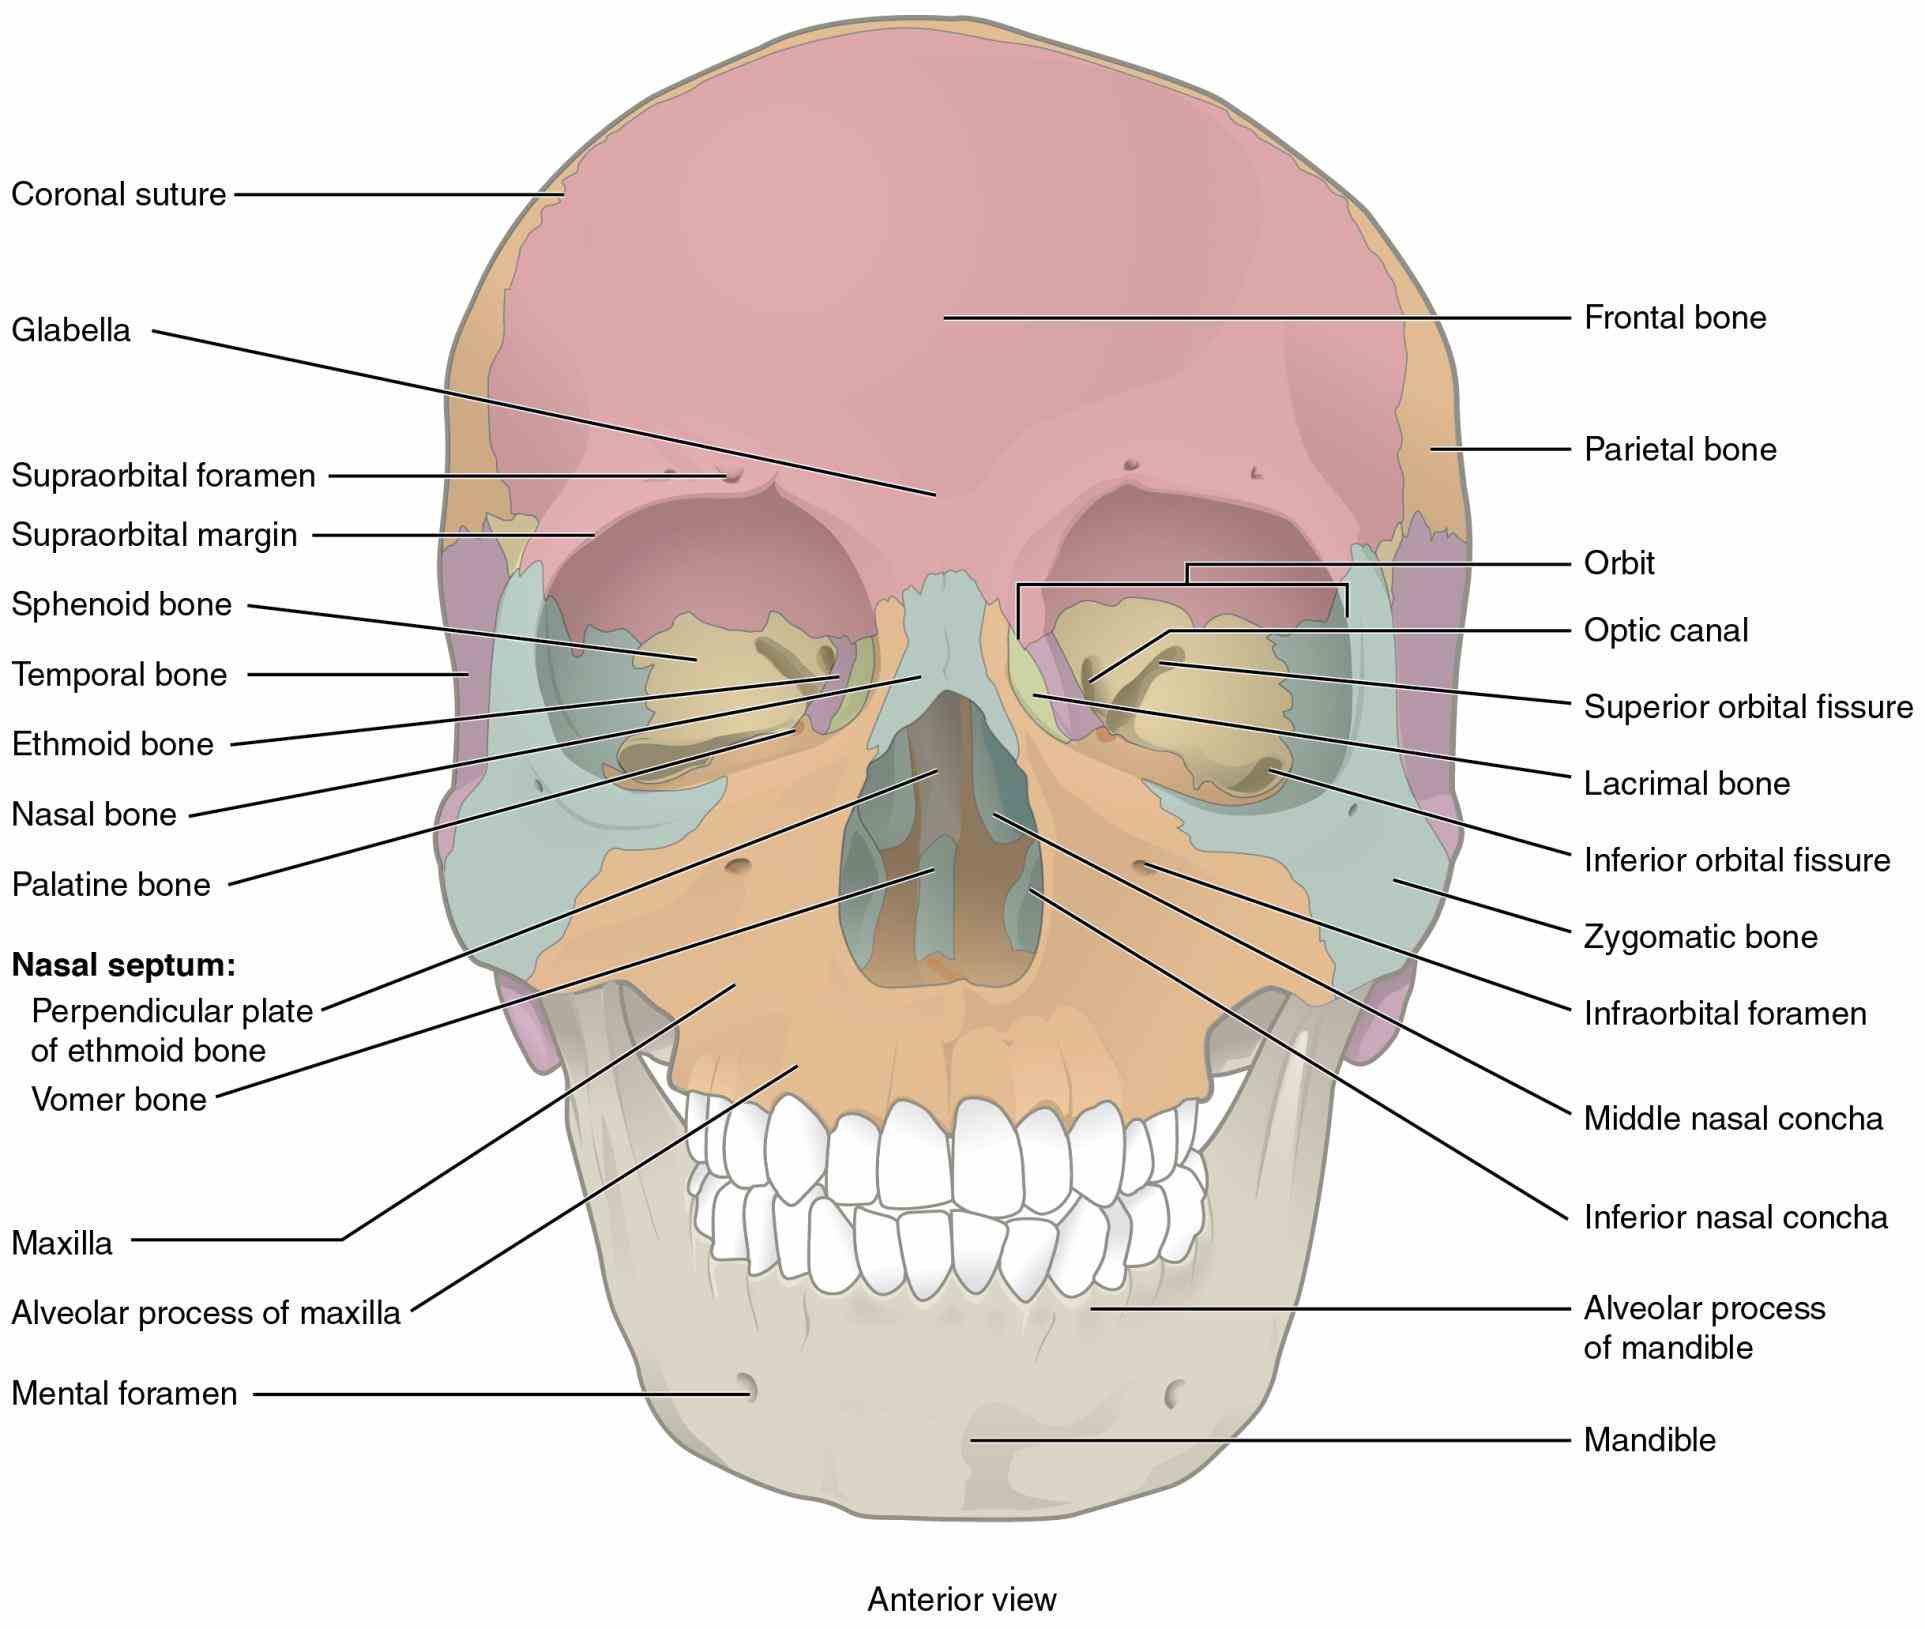 facial bones case quizzes Anatomy The Bones Of The Skull on the anatomy of skull using interactive animations and